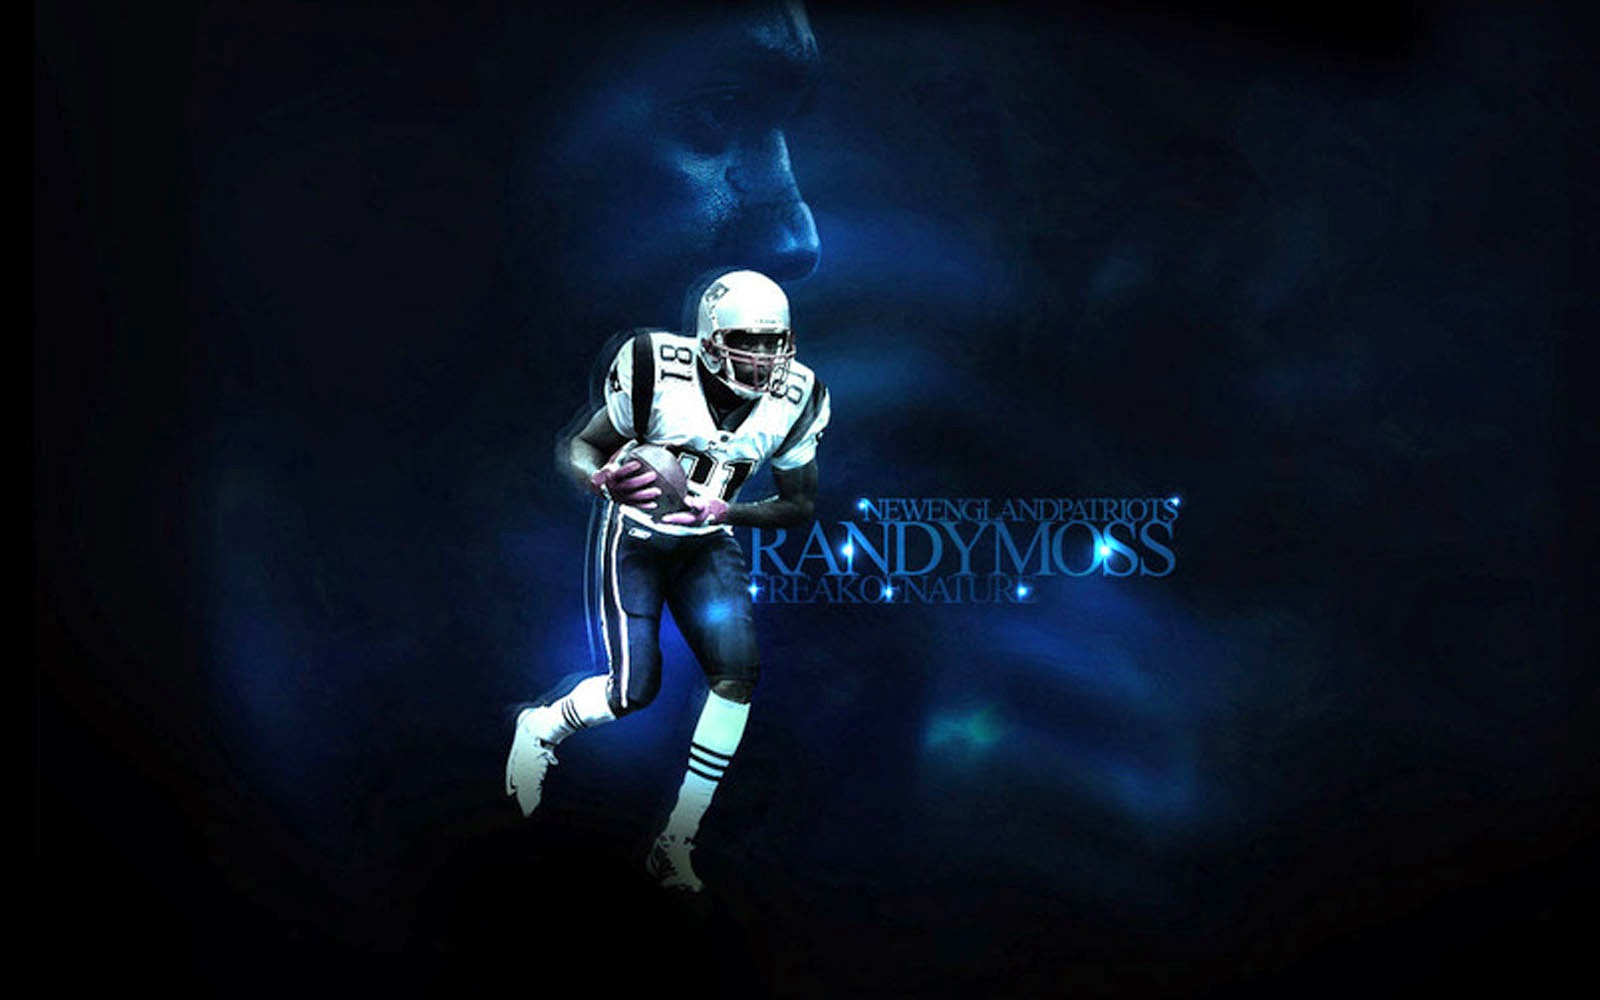 Football player background